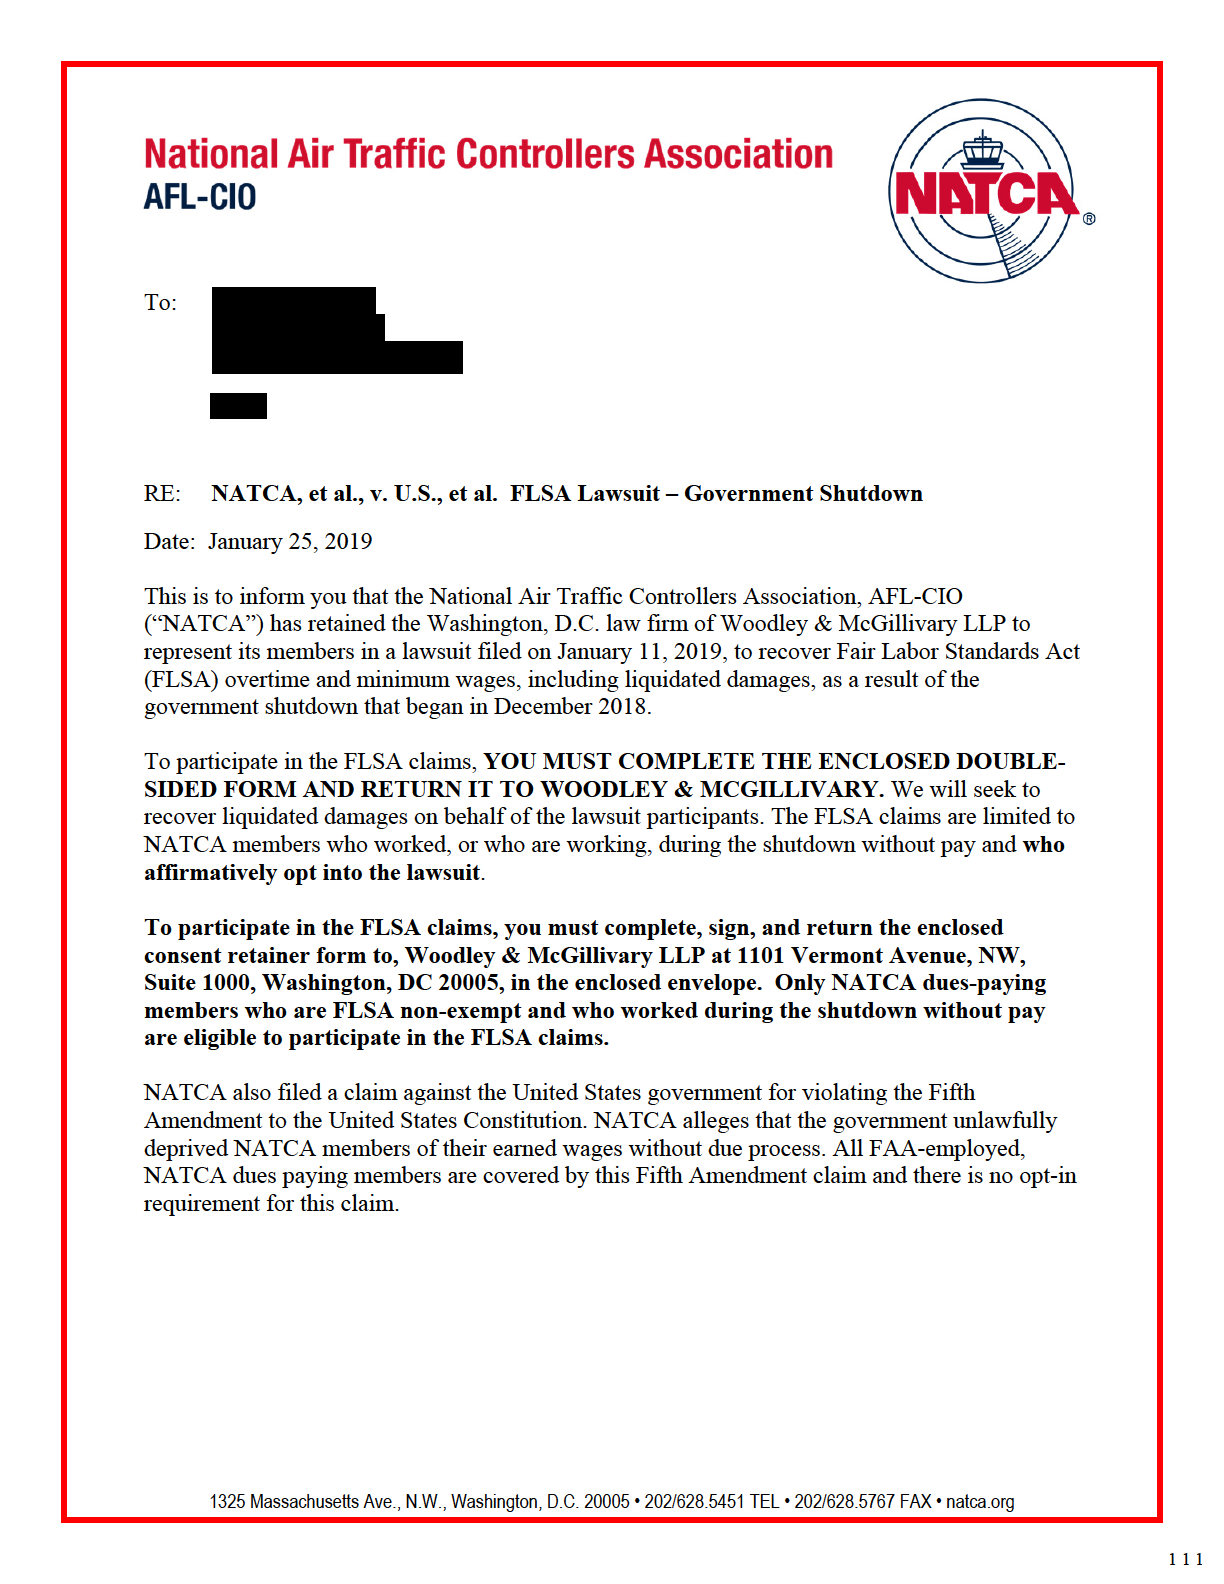 56659 NATCA Government Shutdown Letter Signoff3 Redacted